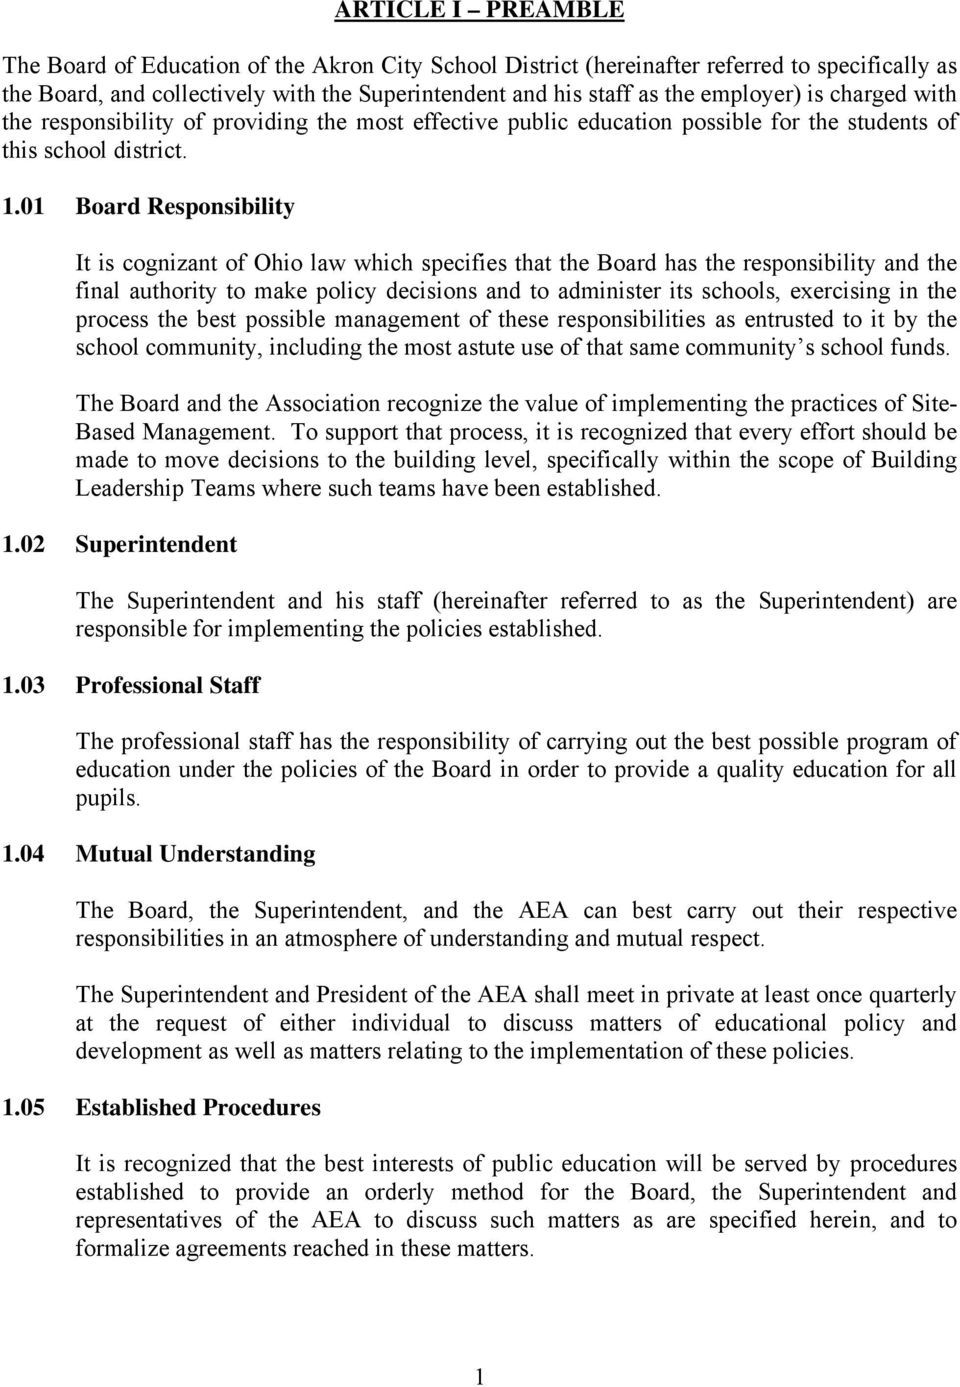 01 Board Responsibility It is cognizant of Ohio law which specifies that the Board has the responsibility and the final authority to make policy decisions and to administer its schools, exercising in